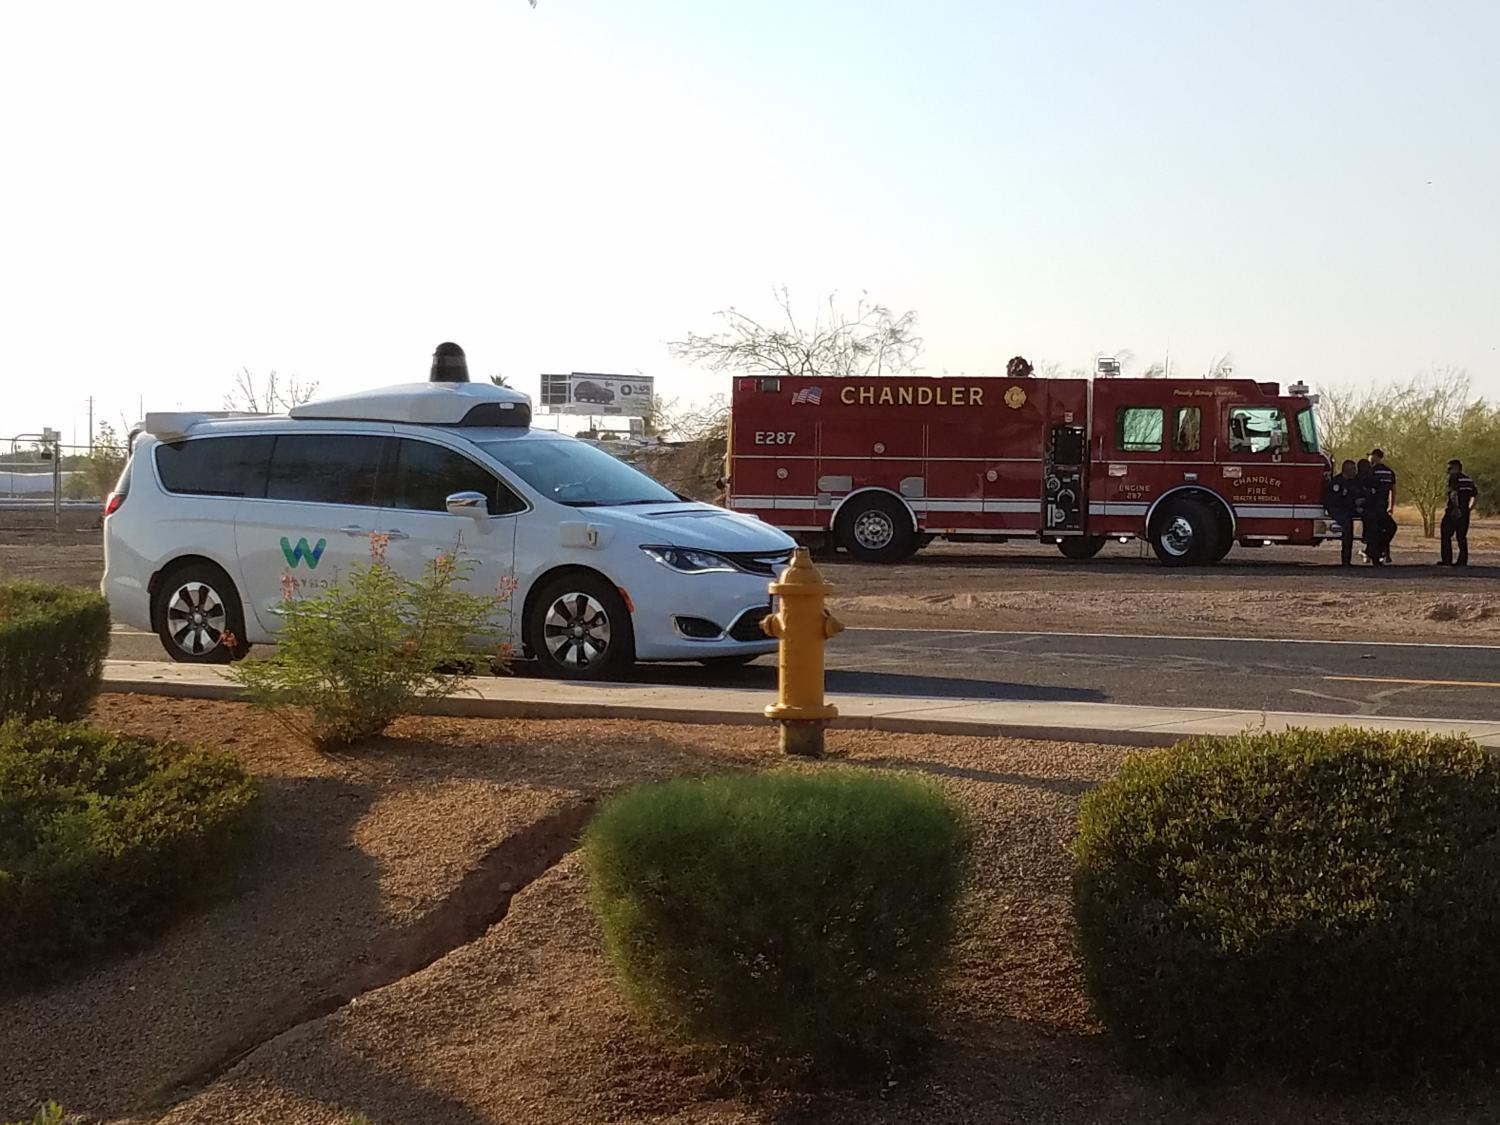 waymo car and fire truck